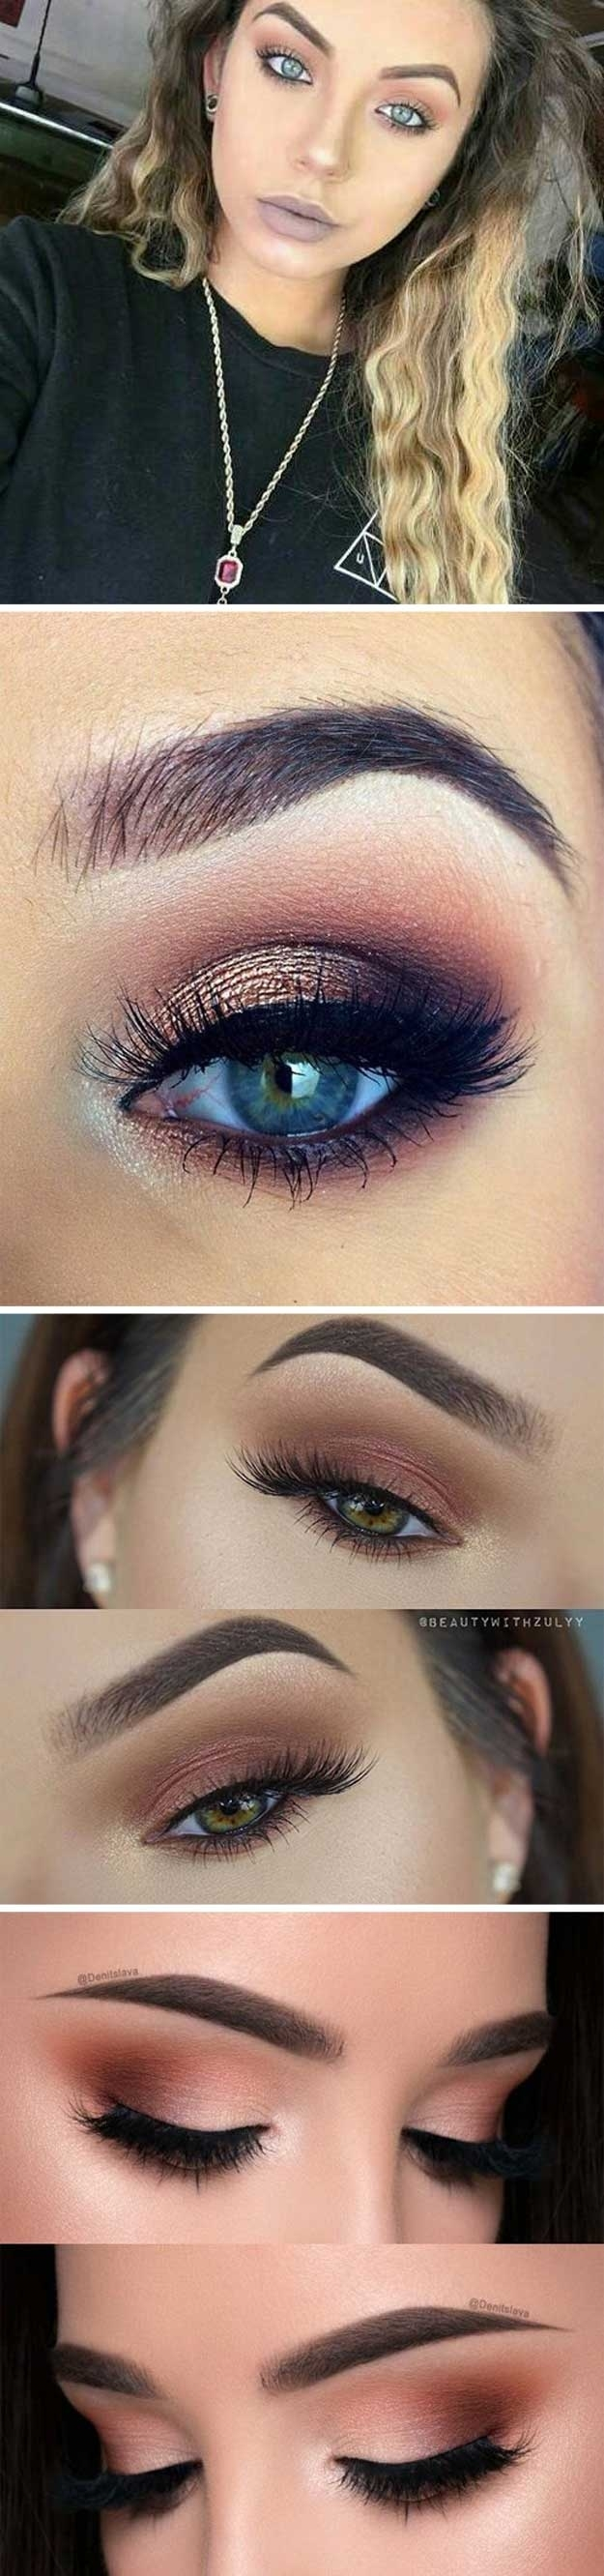 35 Wedding Makeup For Blue Eyes - The Goddess in Makeup Tips For Blue Eyes And Light Brown Hair